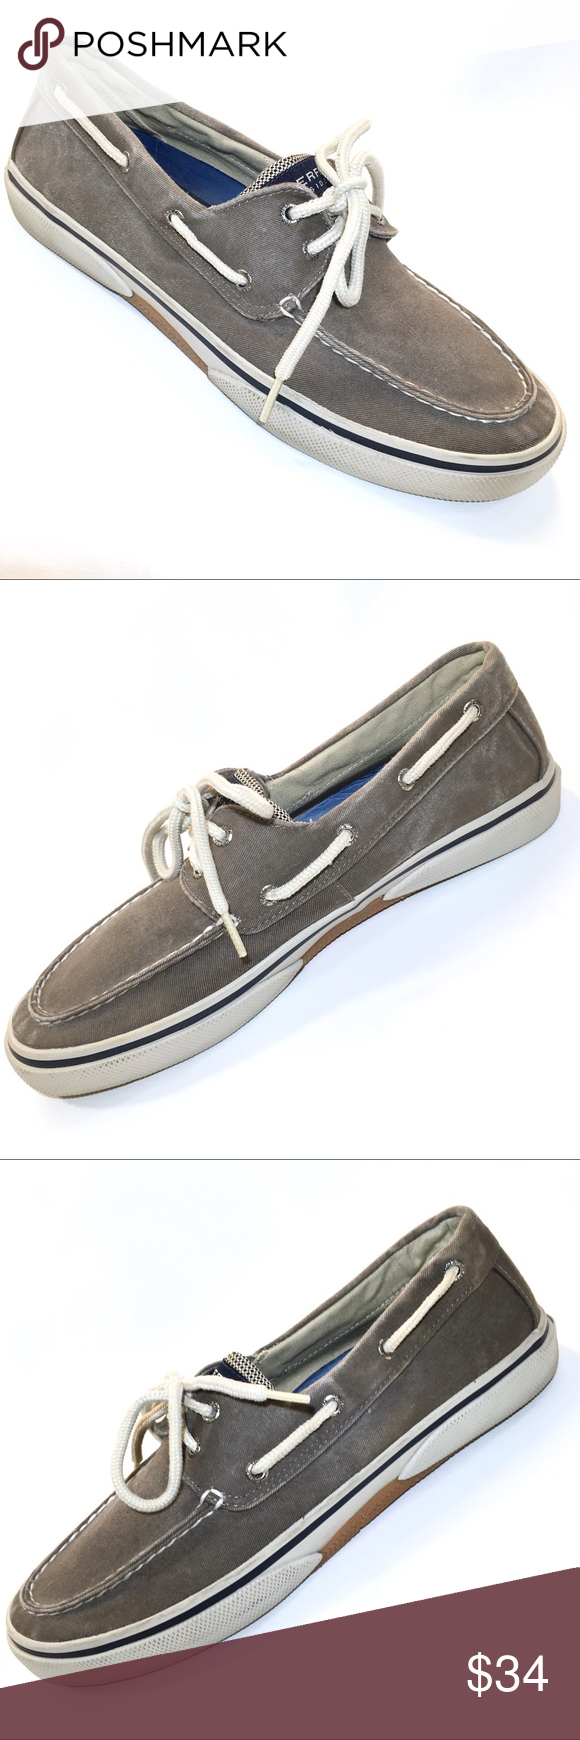 SPERRY Men's Halyard Sneaker Taupe Khaki Tan 10M These beige SPERRY TOP-SIDER Me…